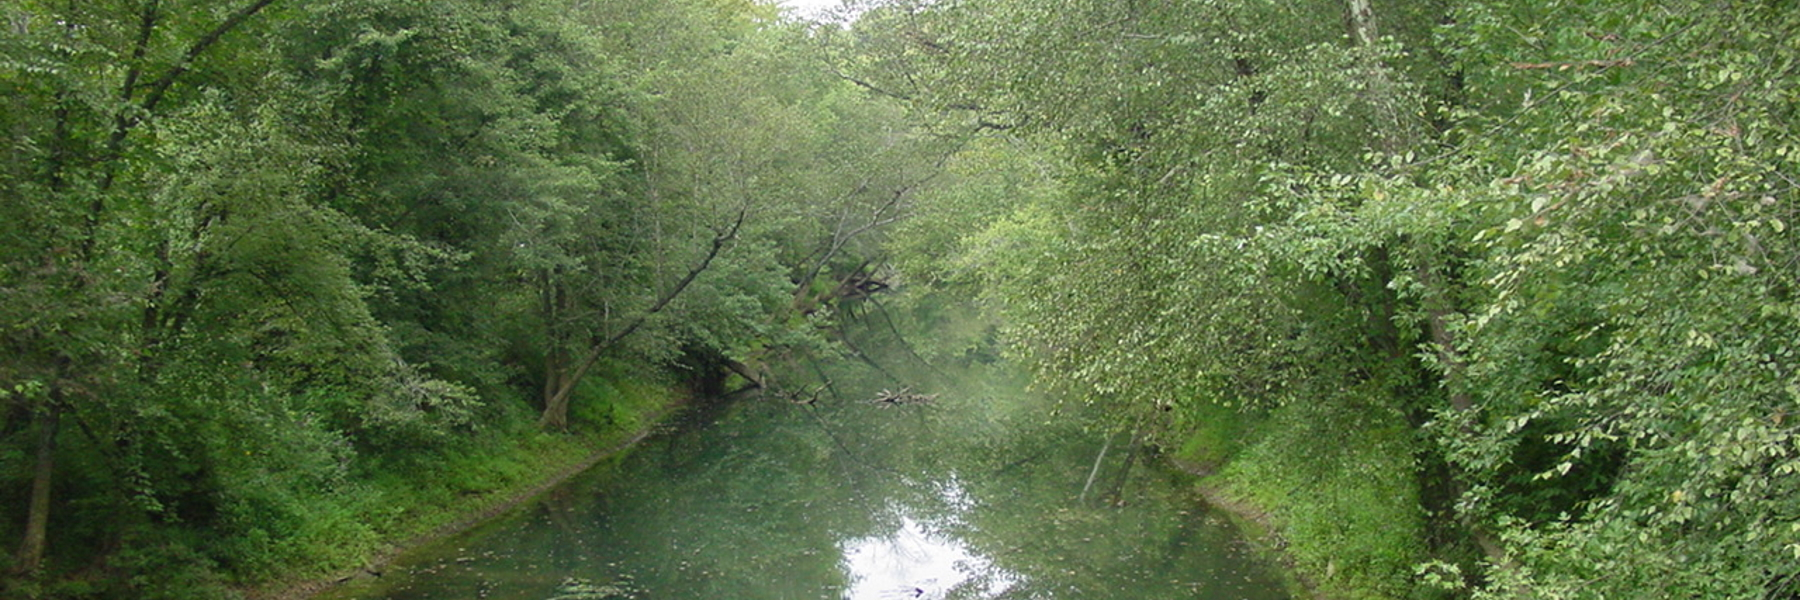 River Overhead View